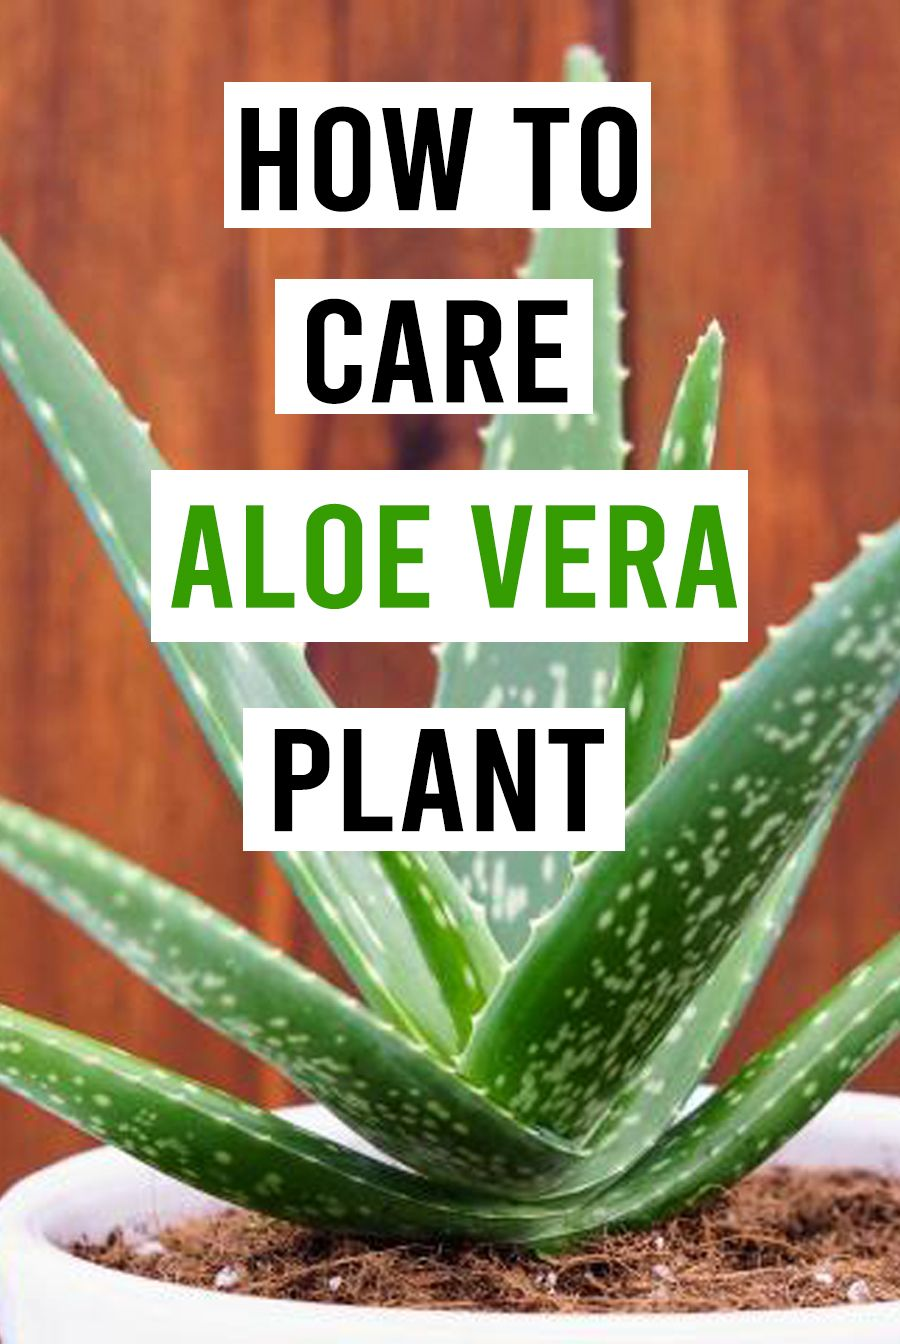 How To Take Care Of Aloe Vera Aloe Vera Plant Care The Ultimate Guide For A Way To Grow Aloe Vera Aloe Vera Plant Aloe Vera Aloe Plant